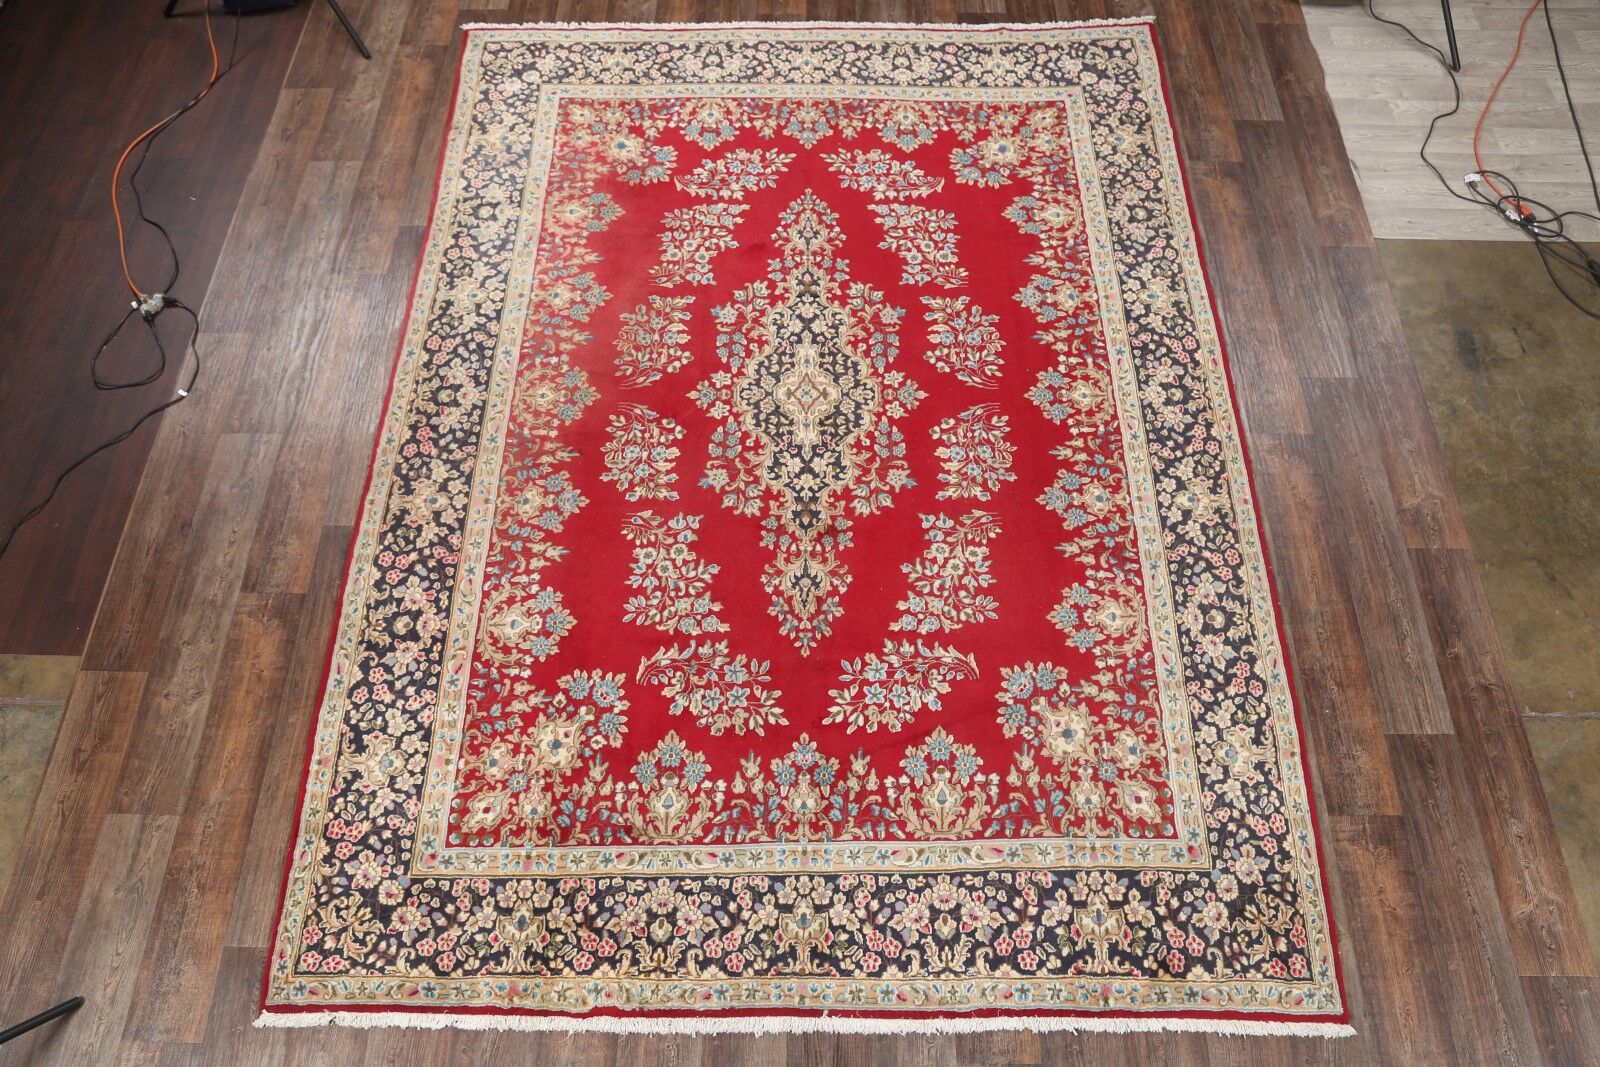 One-of-a-Kind Kerman Persian Genuine Hand-Knotted 8'9